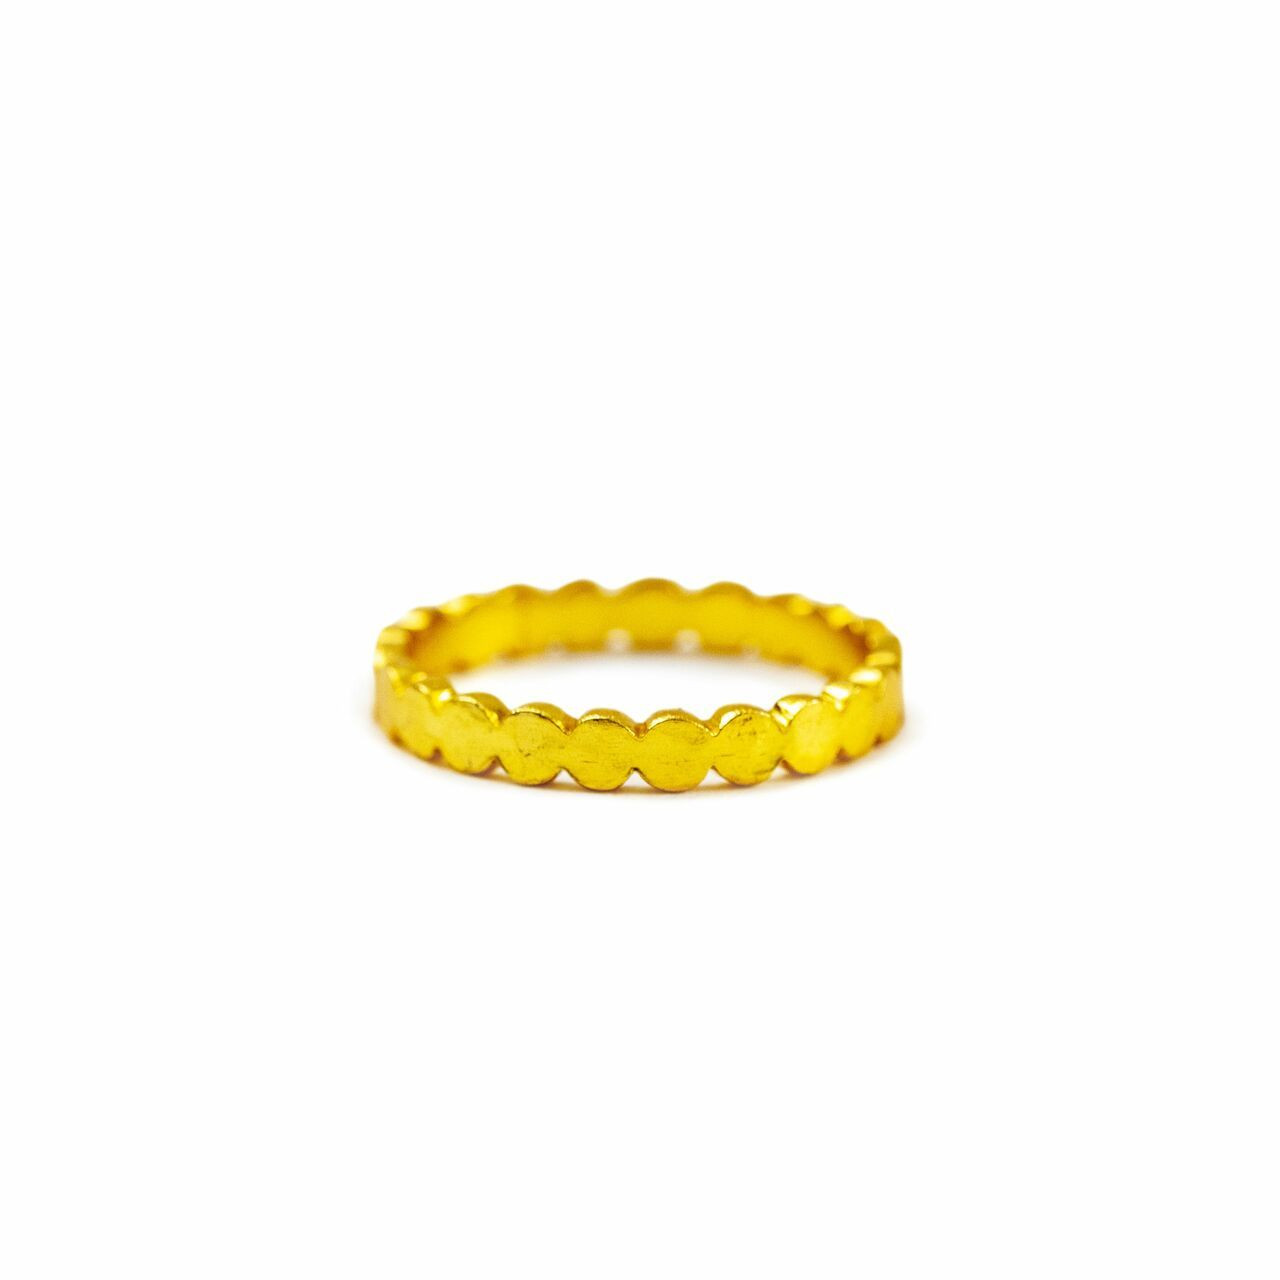 Gold Plated Scalloped Ring - Pick from 4 sizes Creative Designs